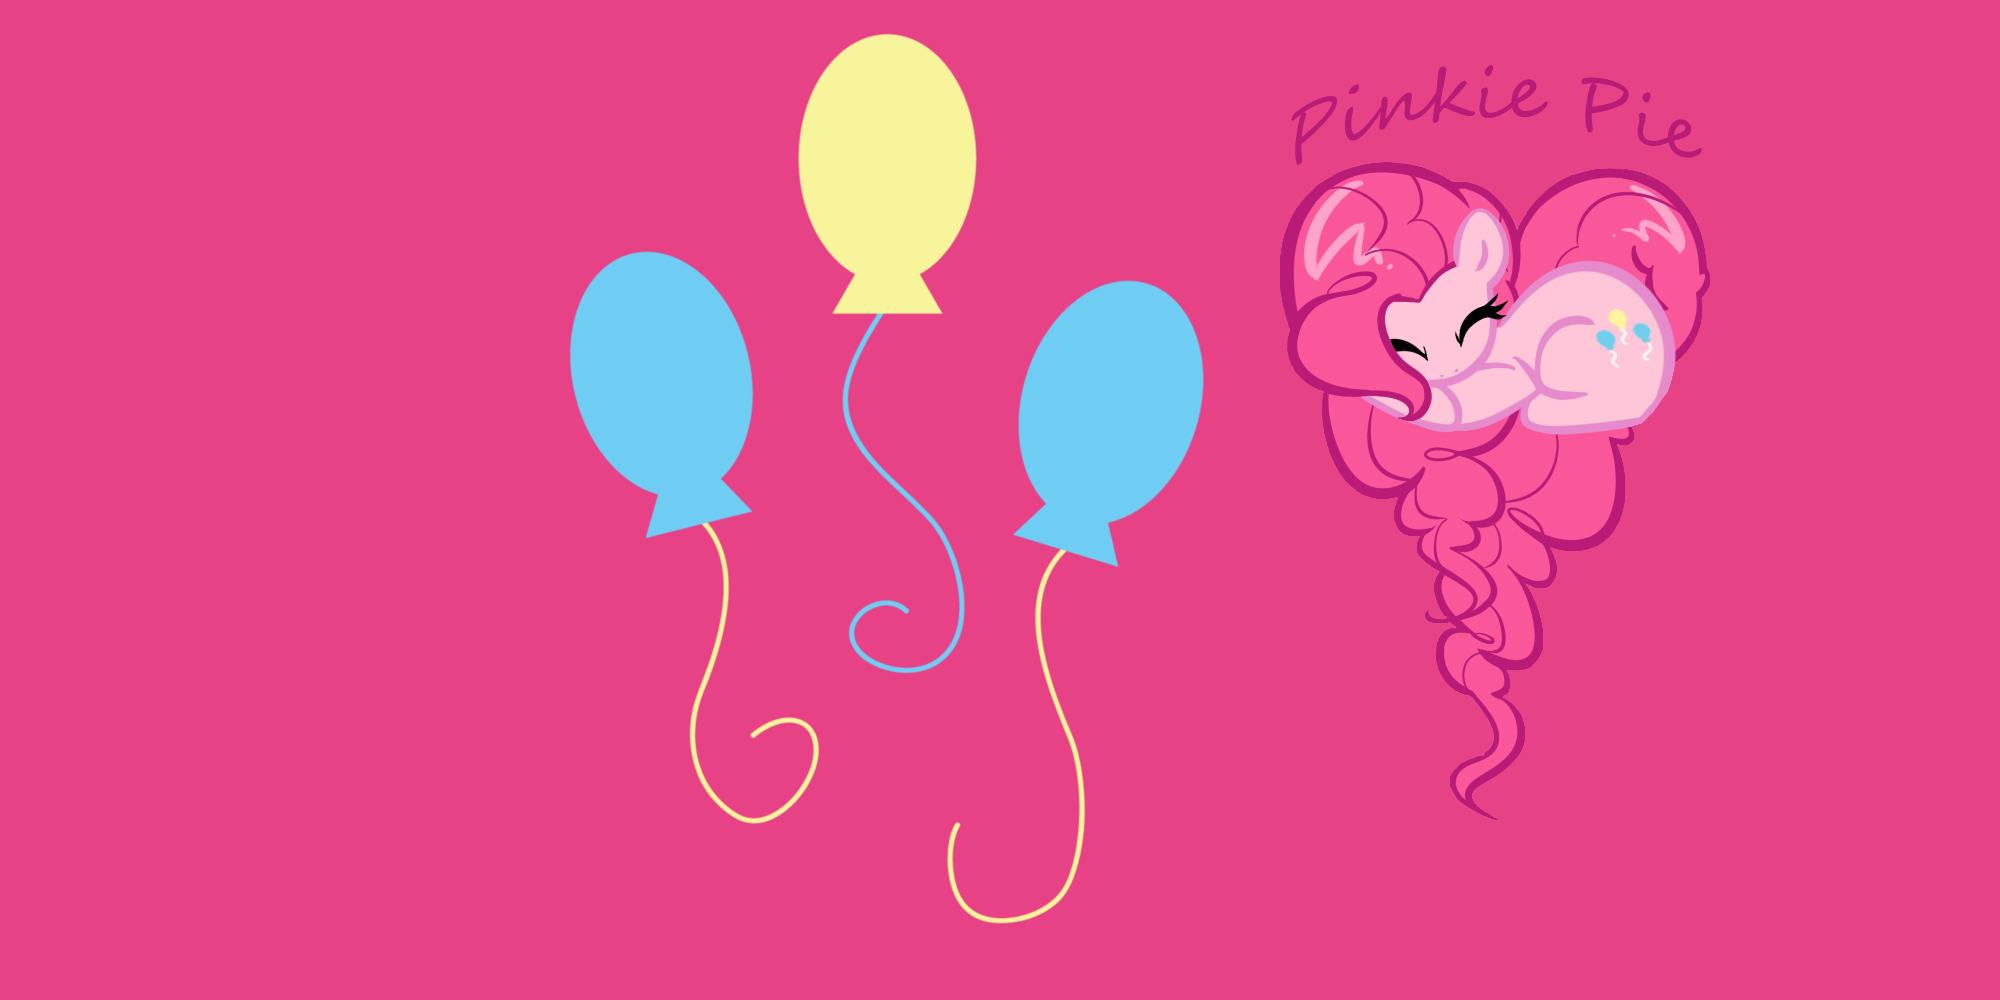 pinkie_pie_heart_wallpaper_by_keat38-d4gfk2b.jpg (2000×1000)